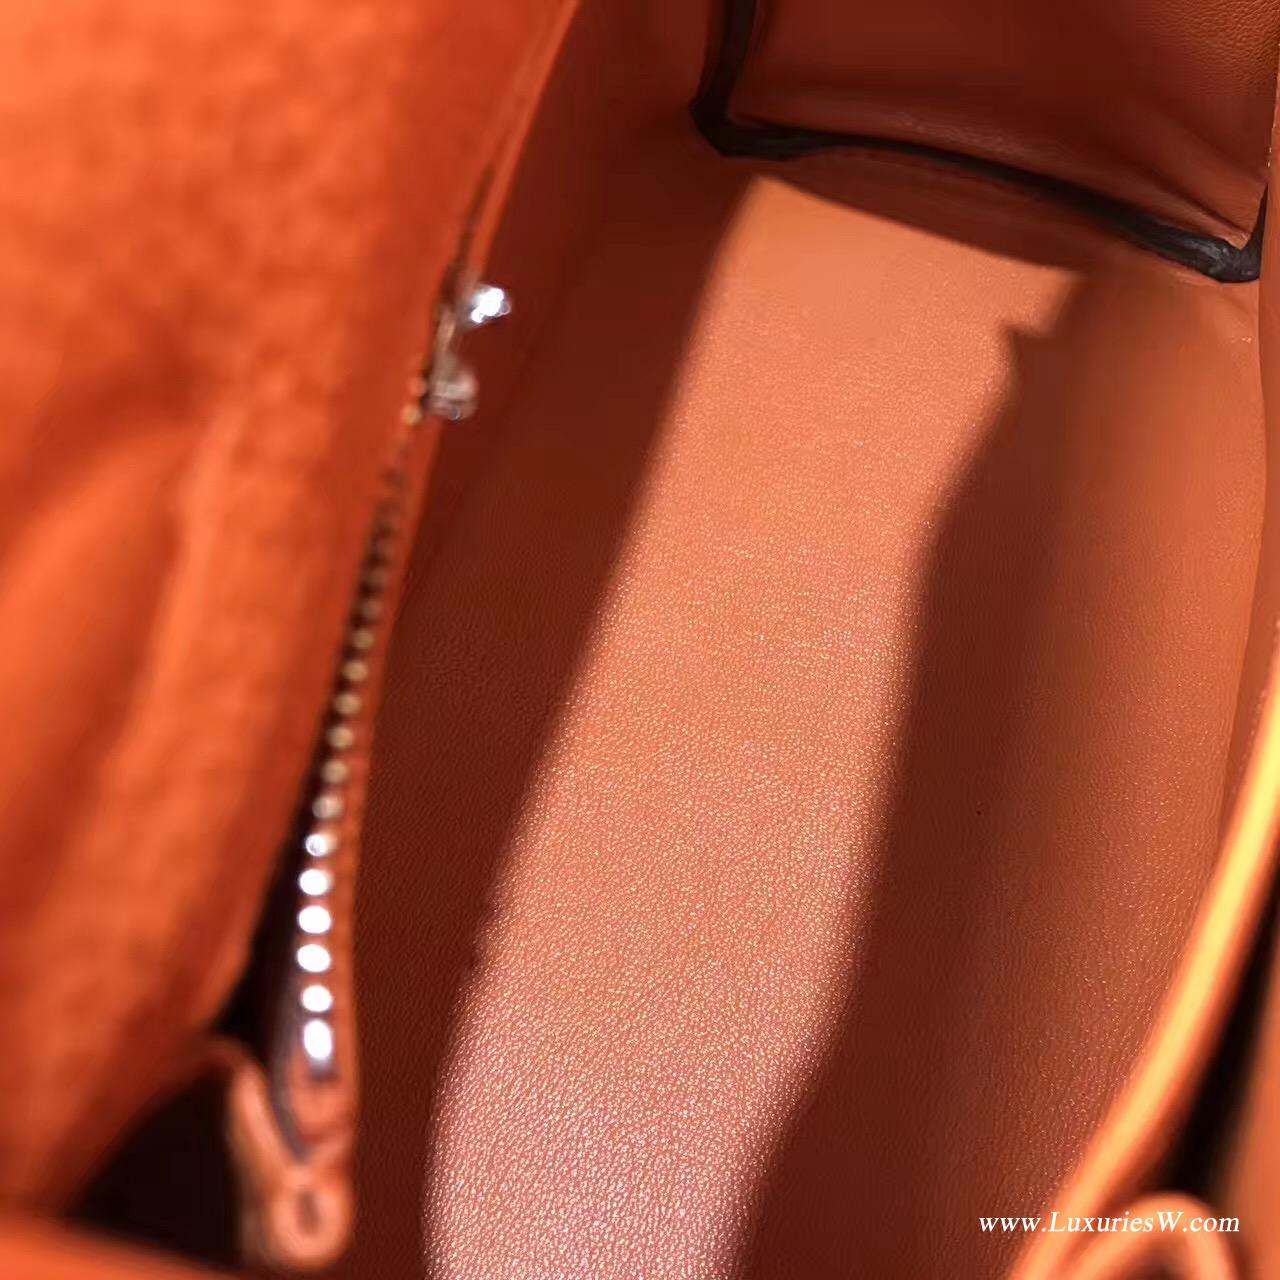 愛馬仕Hermes Kelly 凱莉包 28cm Togo CK93 Orange經典橙银扣